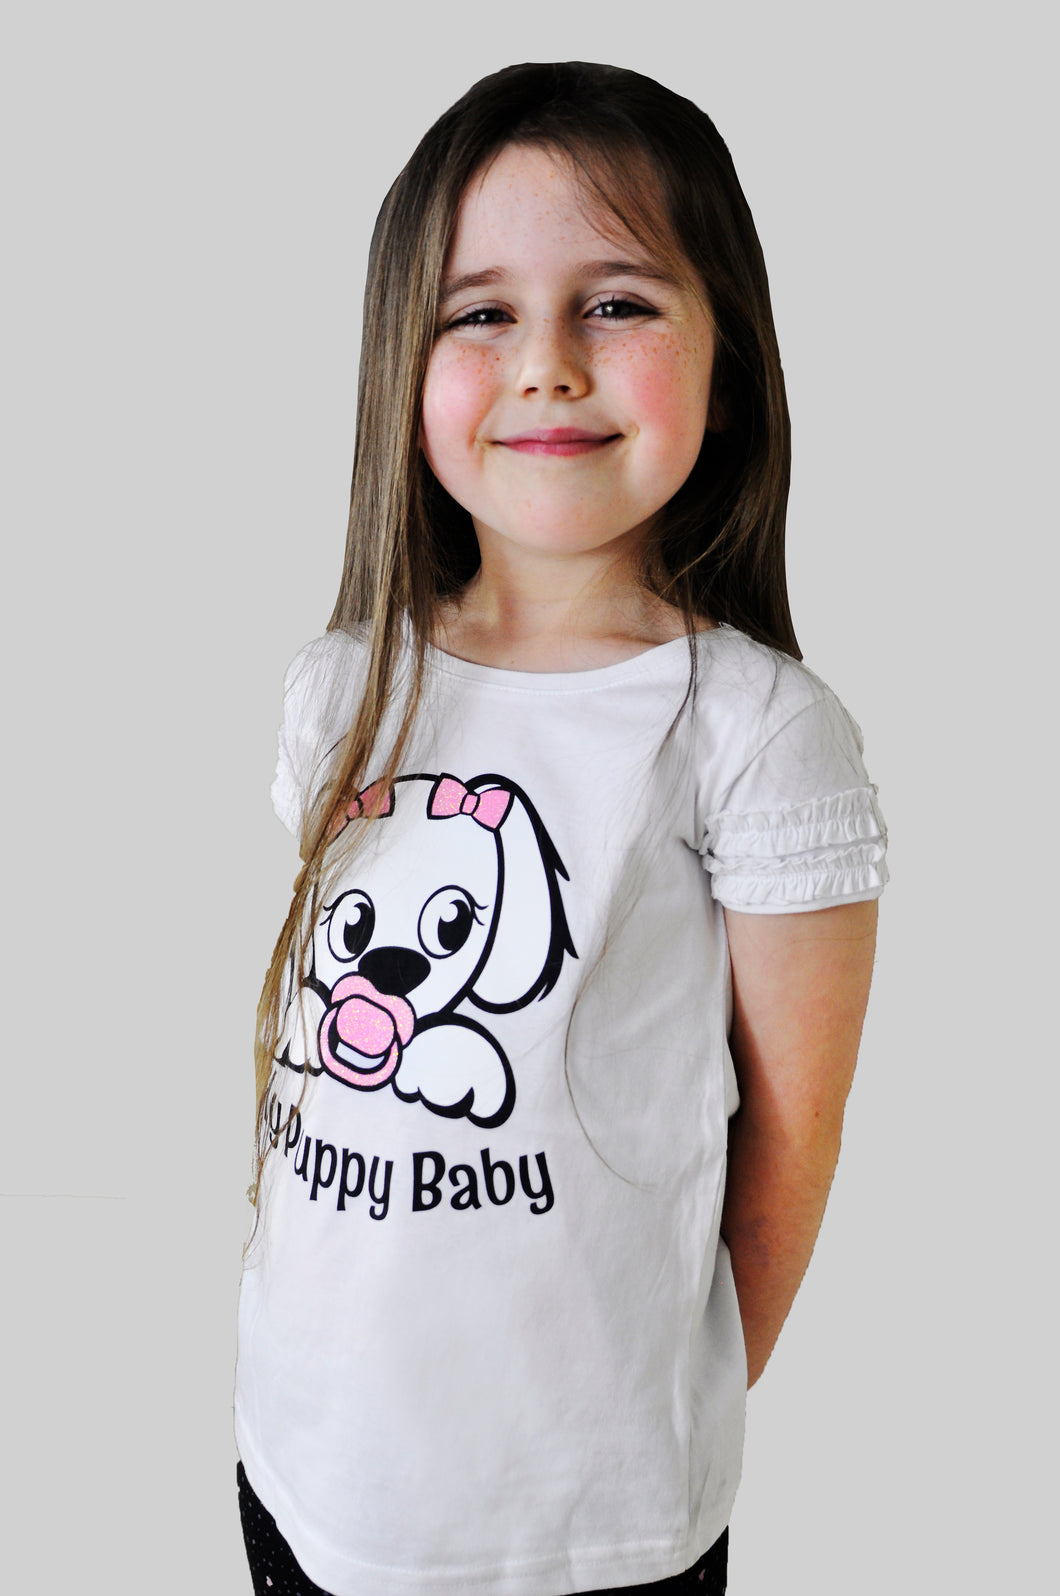 My Puppy Baby Kids T-Shirt with Sparkle Logo and Frill Sleeve